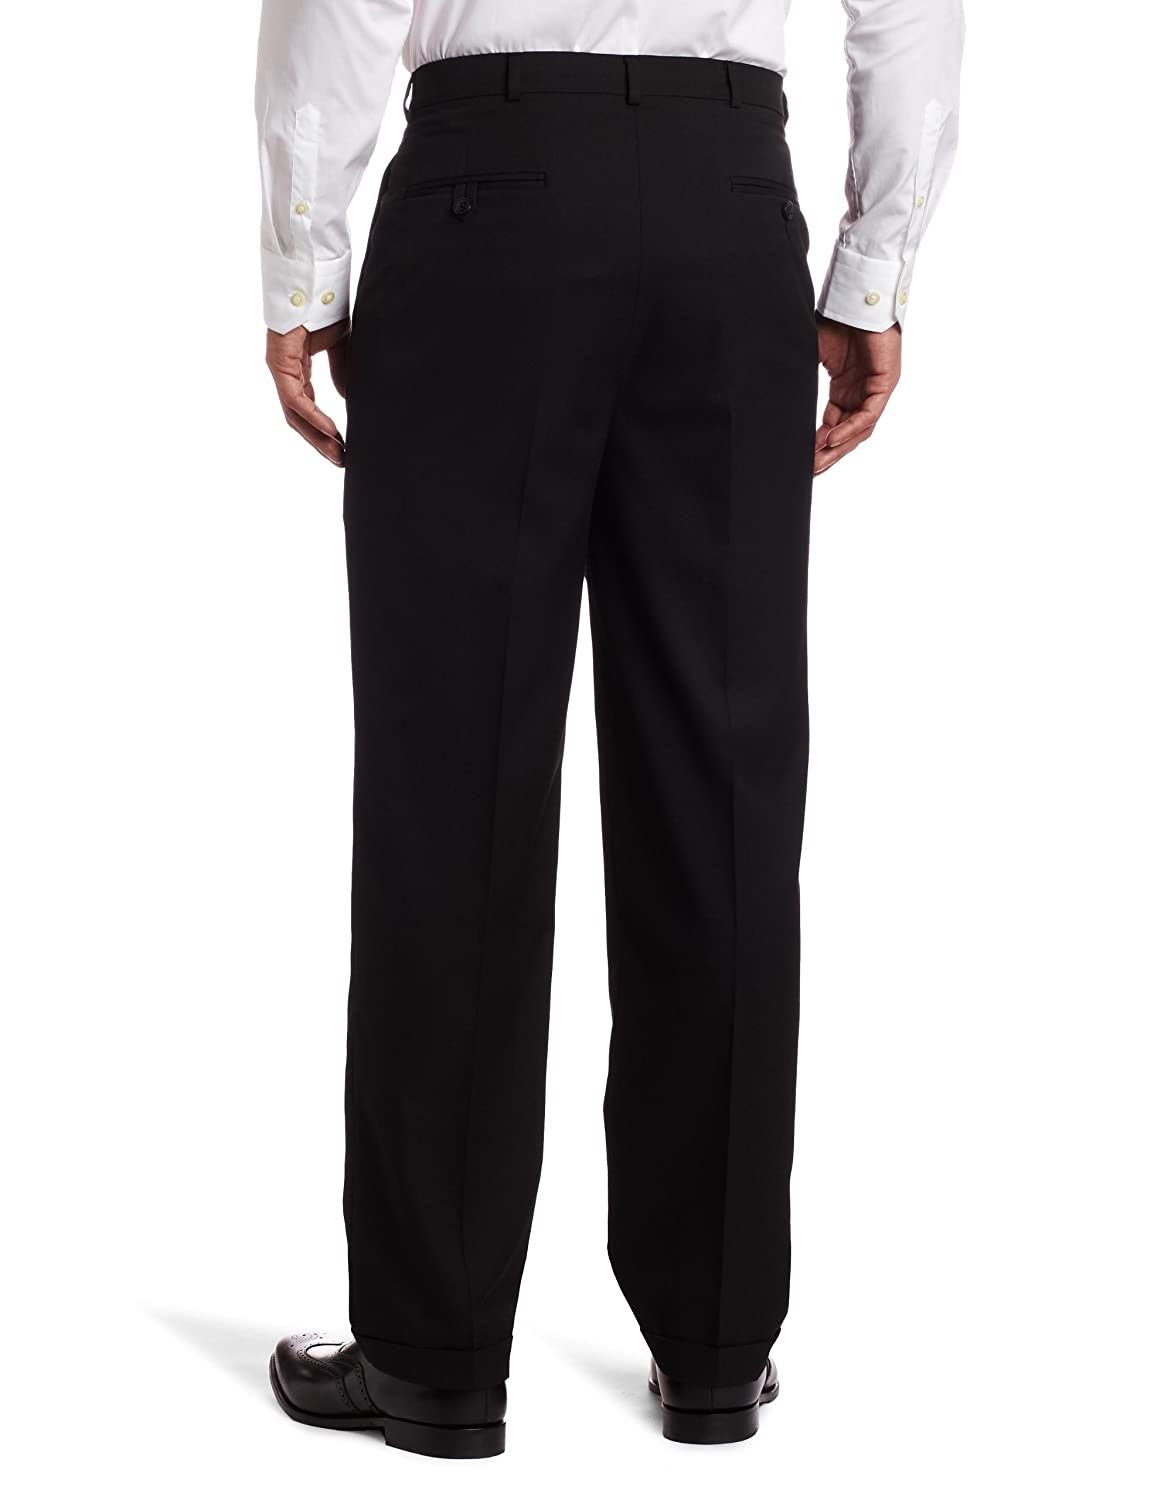 Haggar Mens Solid Pleat Front Suit Separate Pant 21412286456